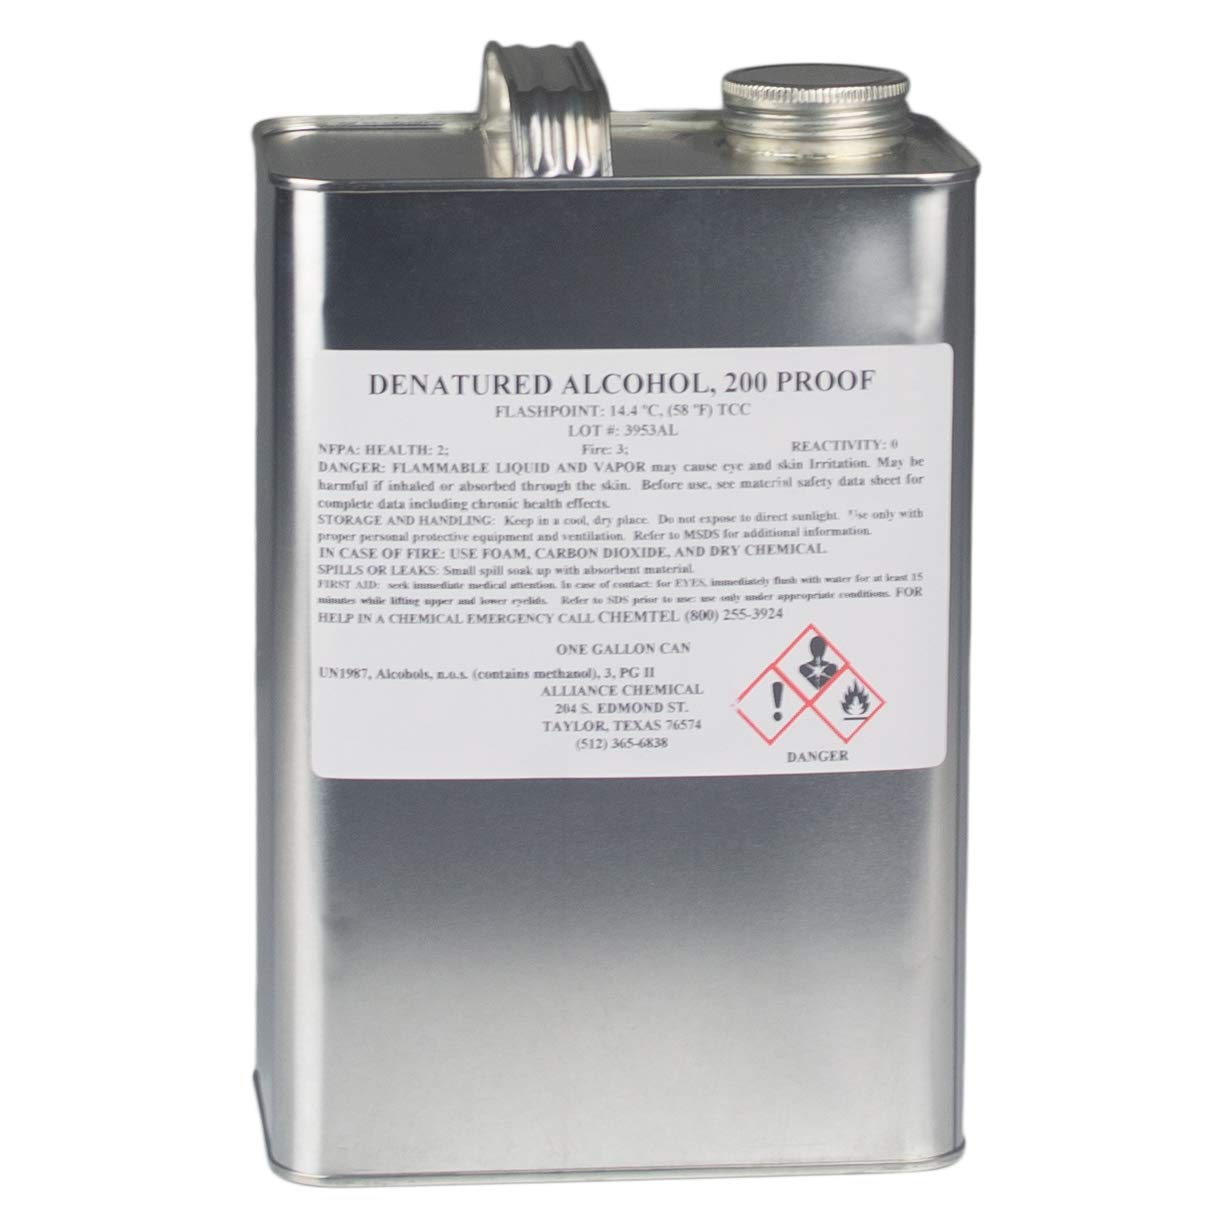 Denatured Alcohol 200 Proof - One Gallon Can by Alliance Chemical